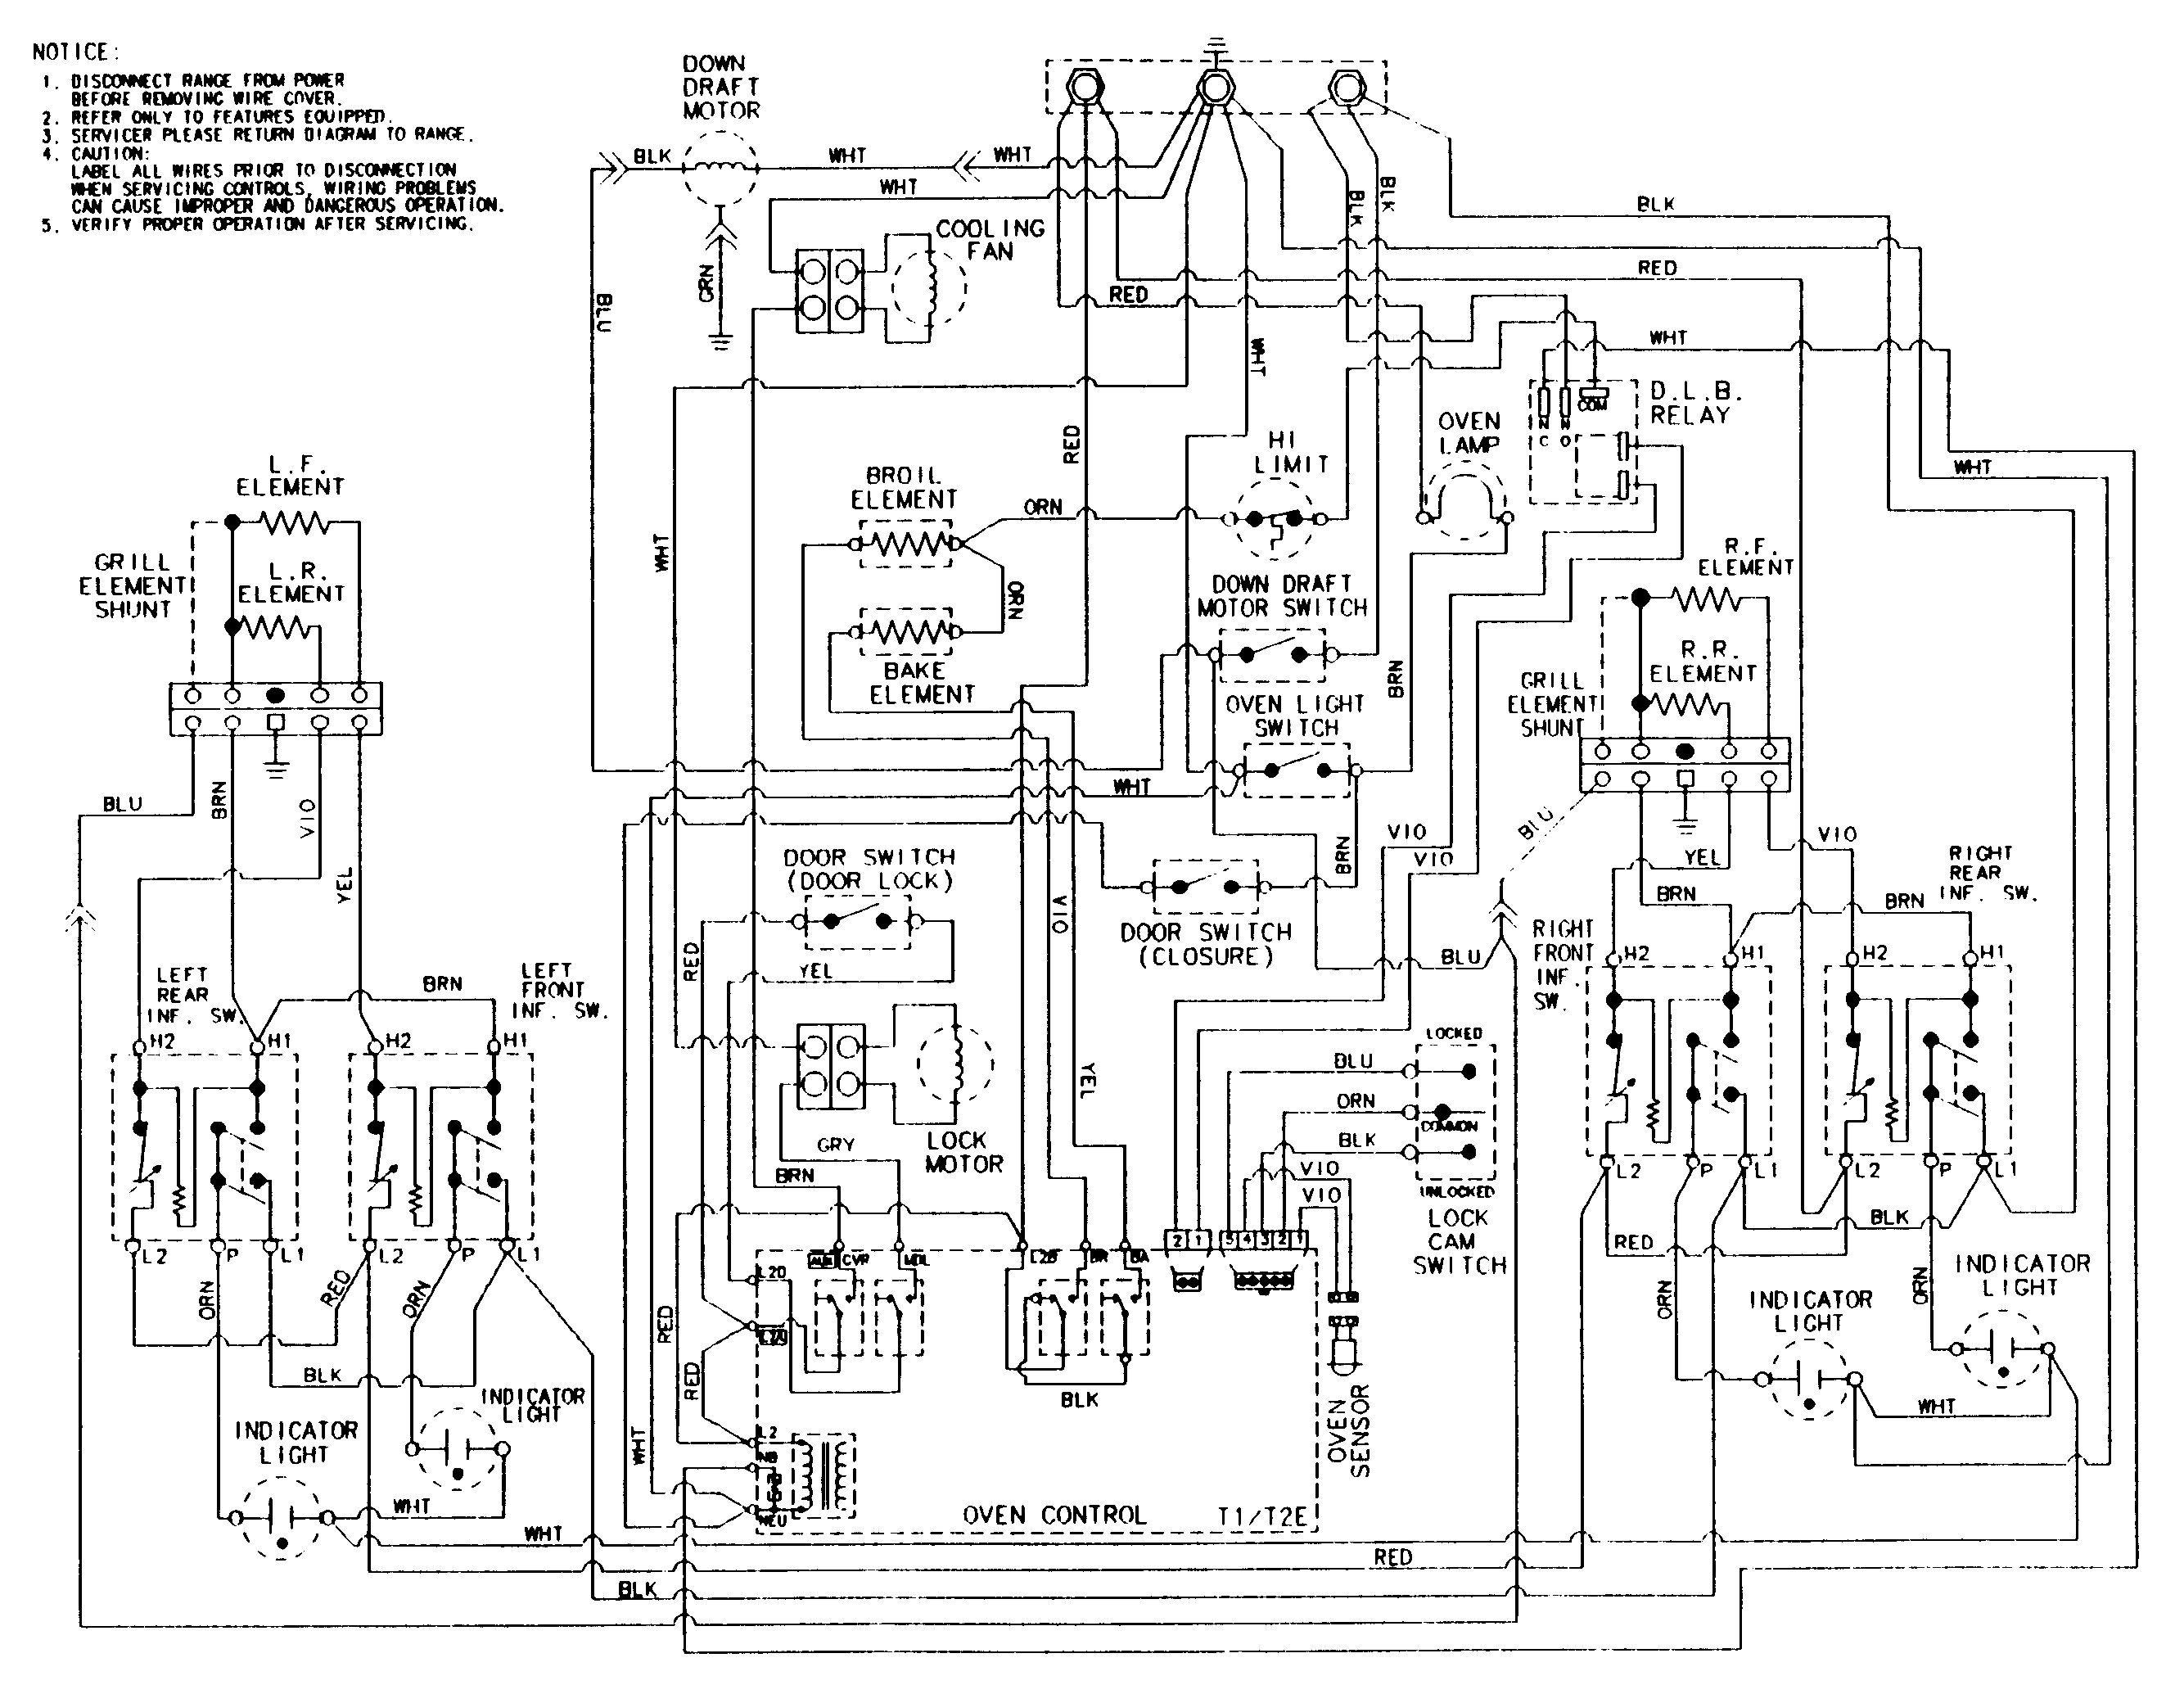 wiring information sve47100bc wc ser 14 parts electrical home wiring diagrams efcaviation com  at bakdesigns.co